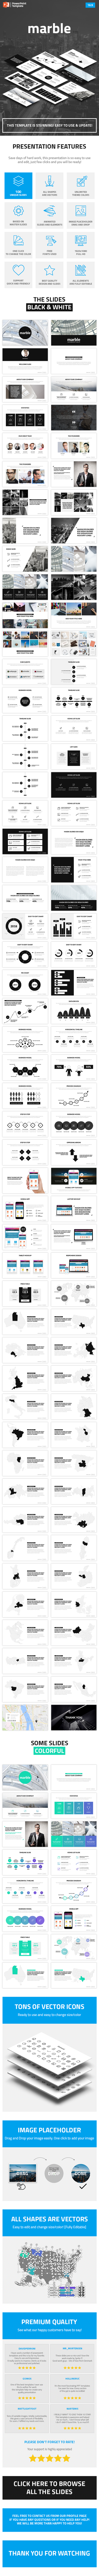 Marble - Easy to Edit Business PPT Template - Business PowerPoint Templates